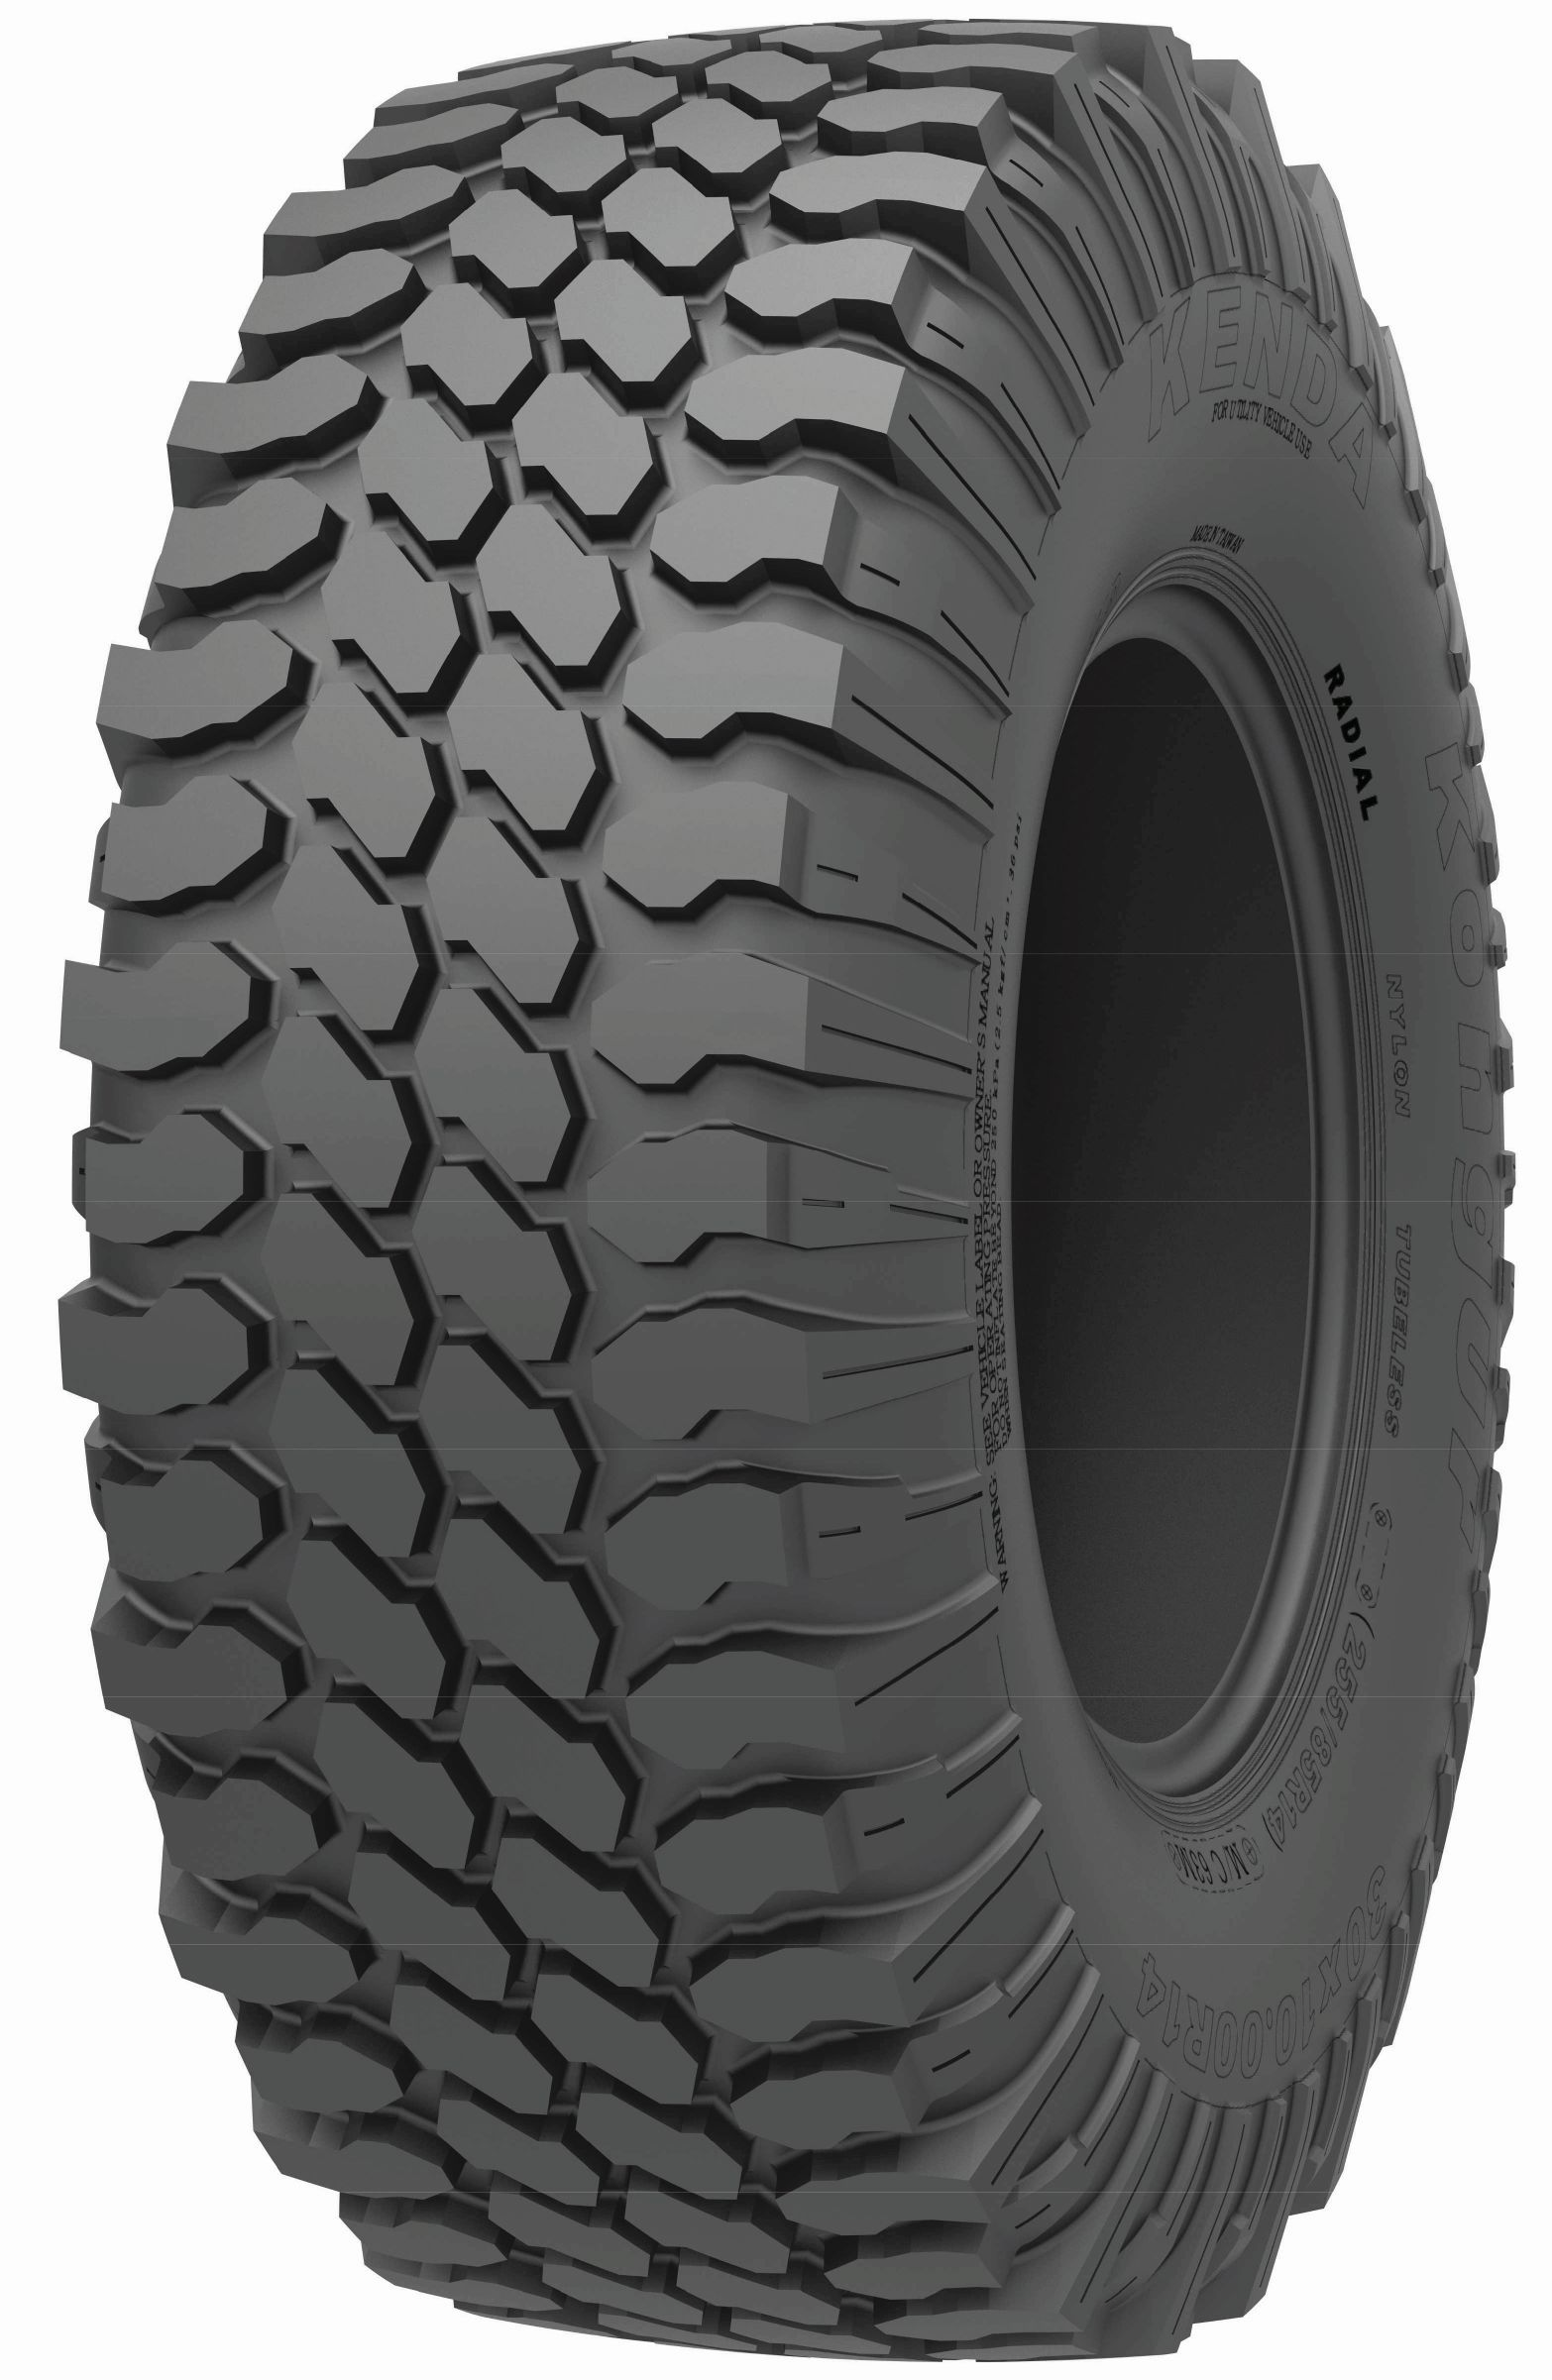 Kenda Will Display Kongur UTV Tires at AIMExpo